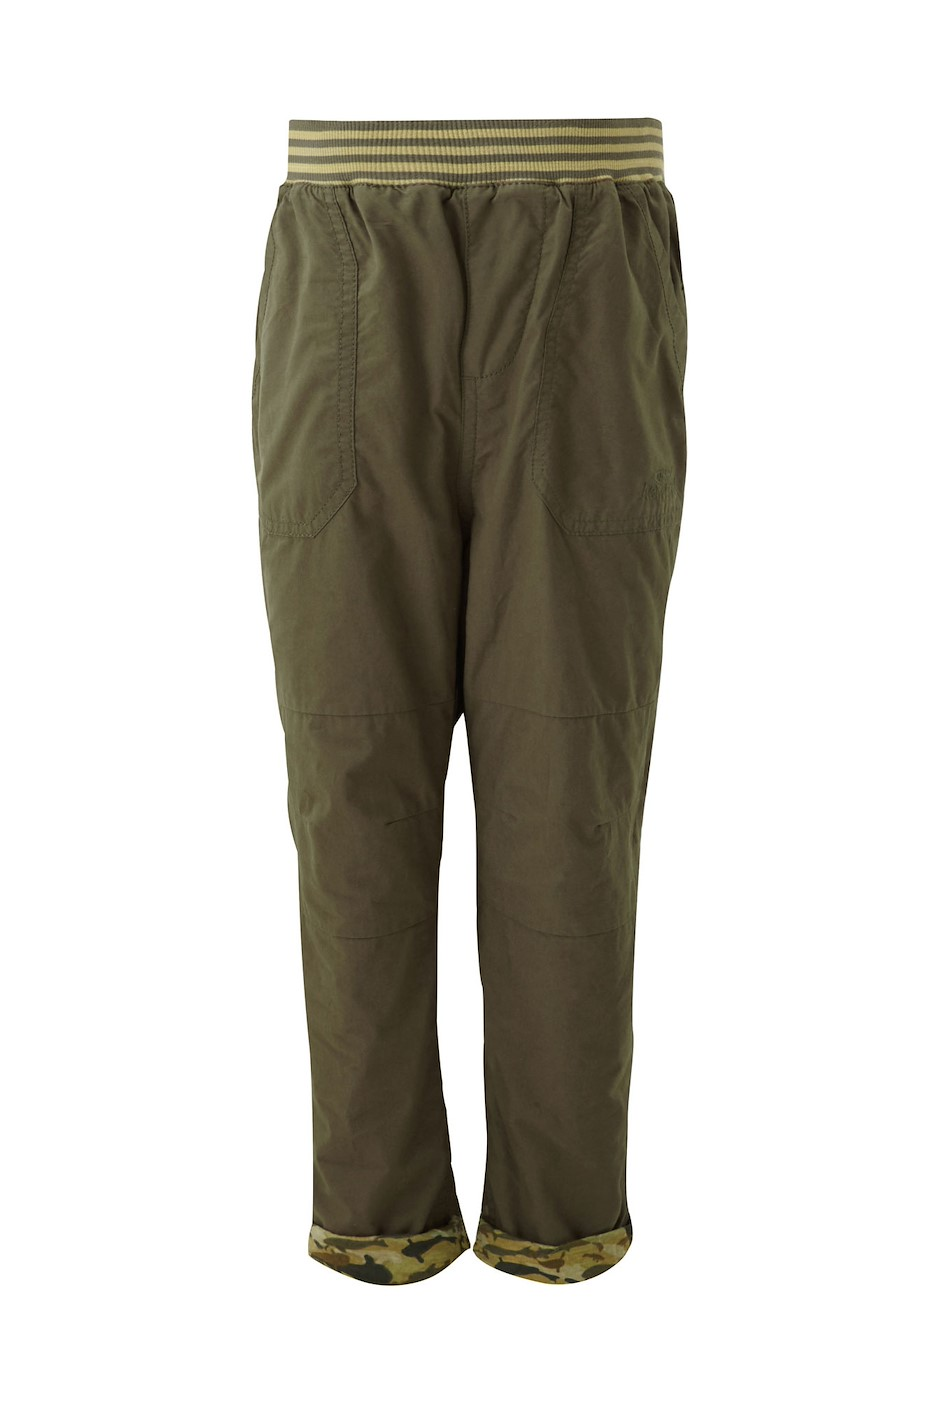 Devin Jersey Lined Cargo Dark Olive (Size Age 14)